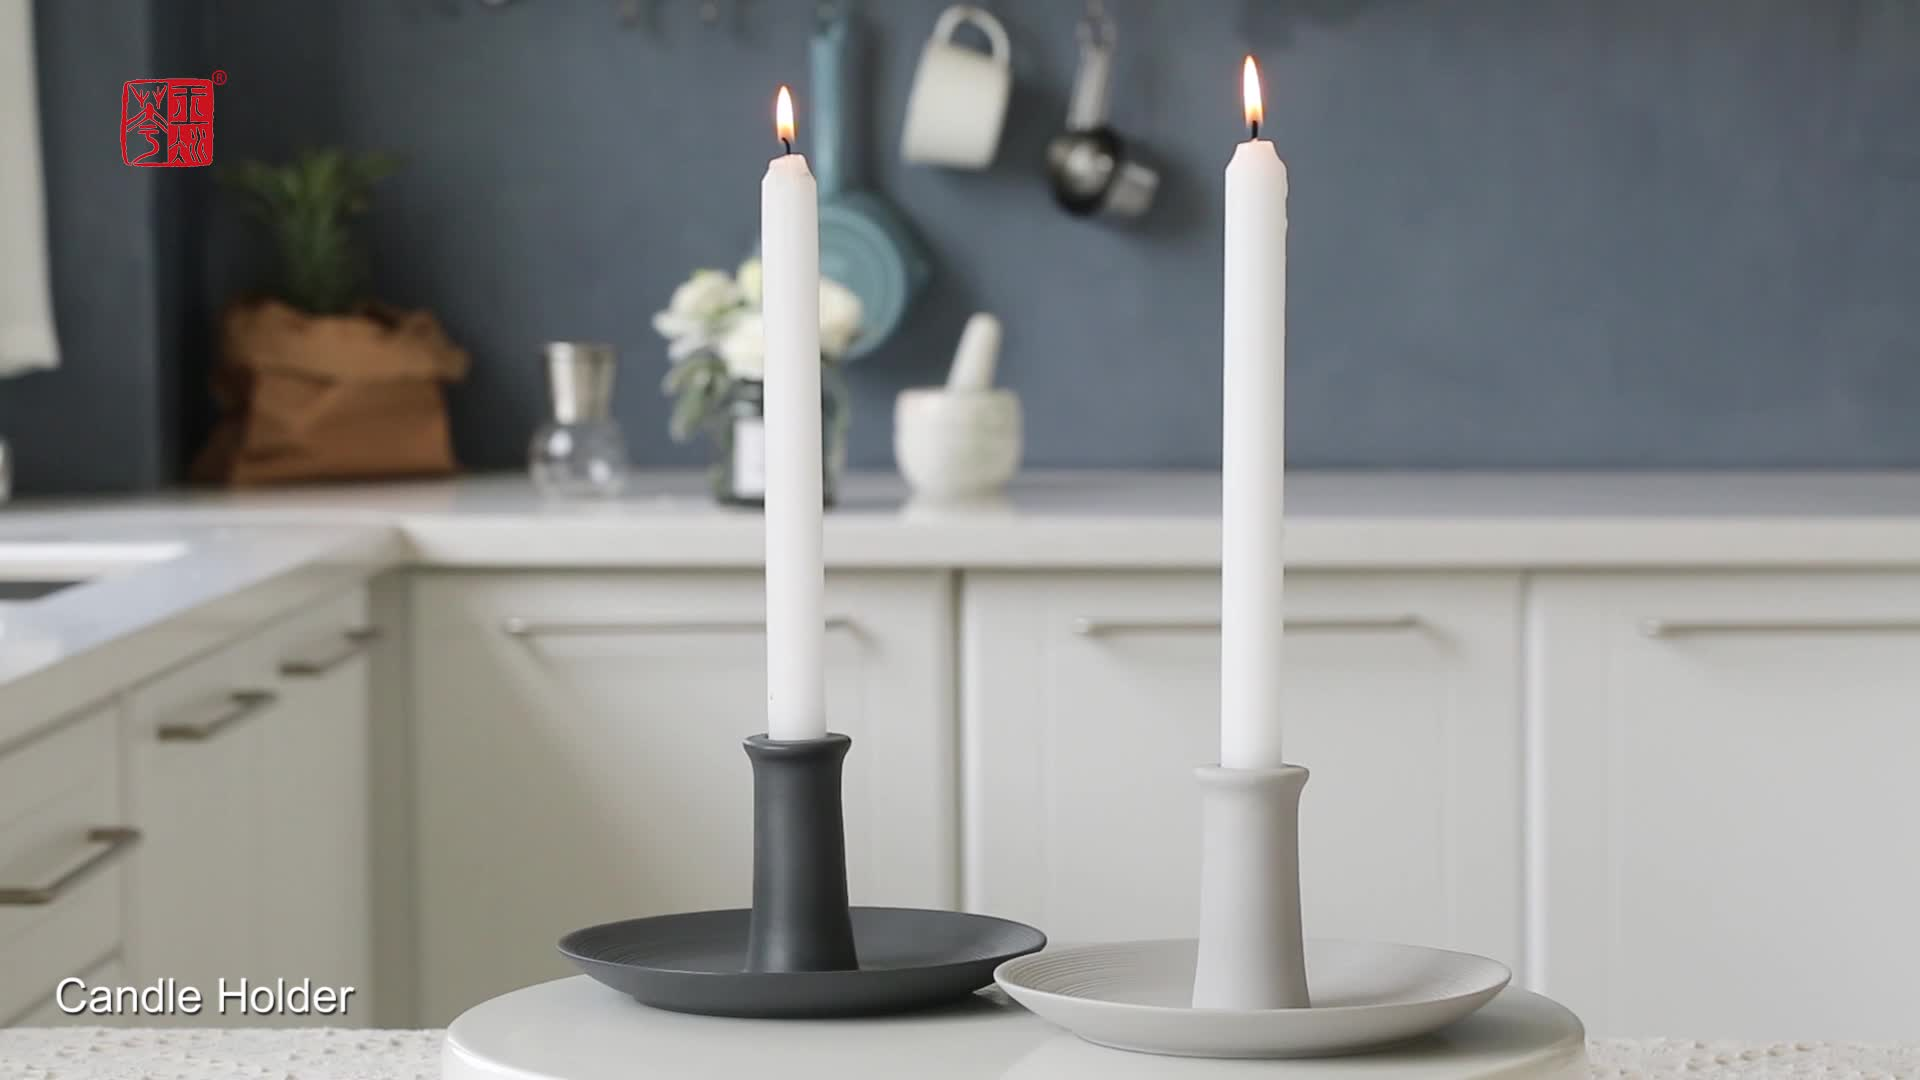 Church Tall Candlestick Holder, Vintage-Style Round Textured Wedding Candle Holder